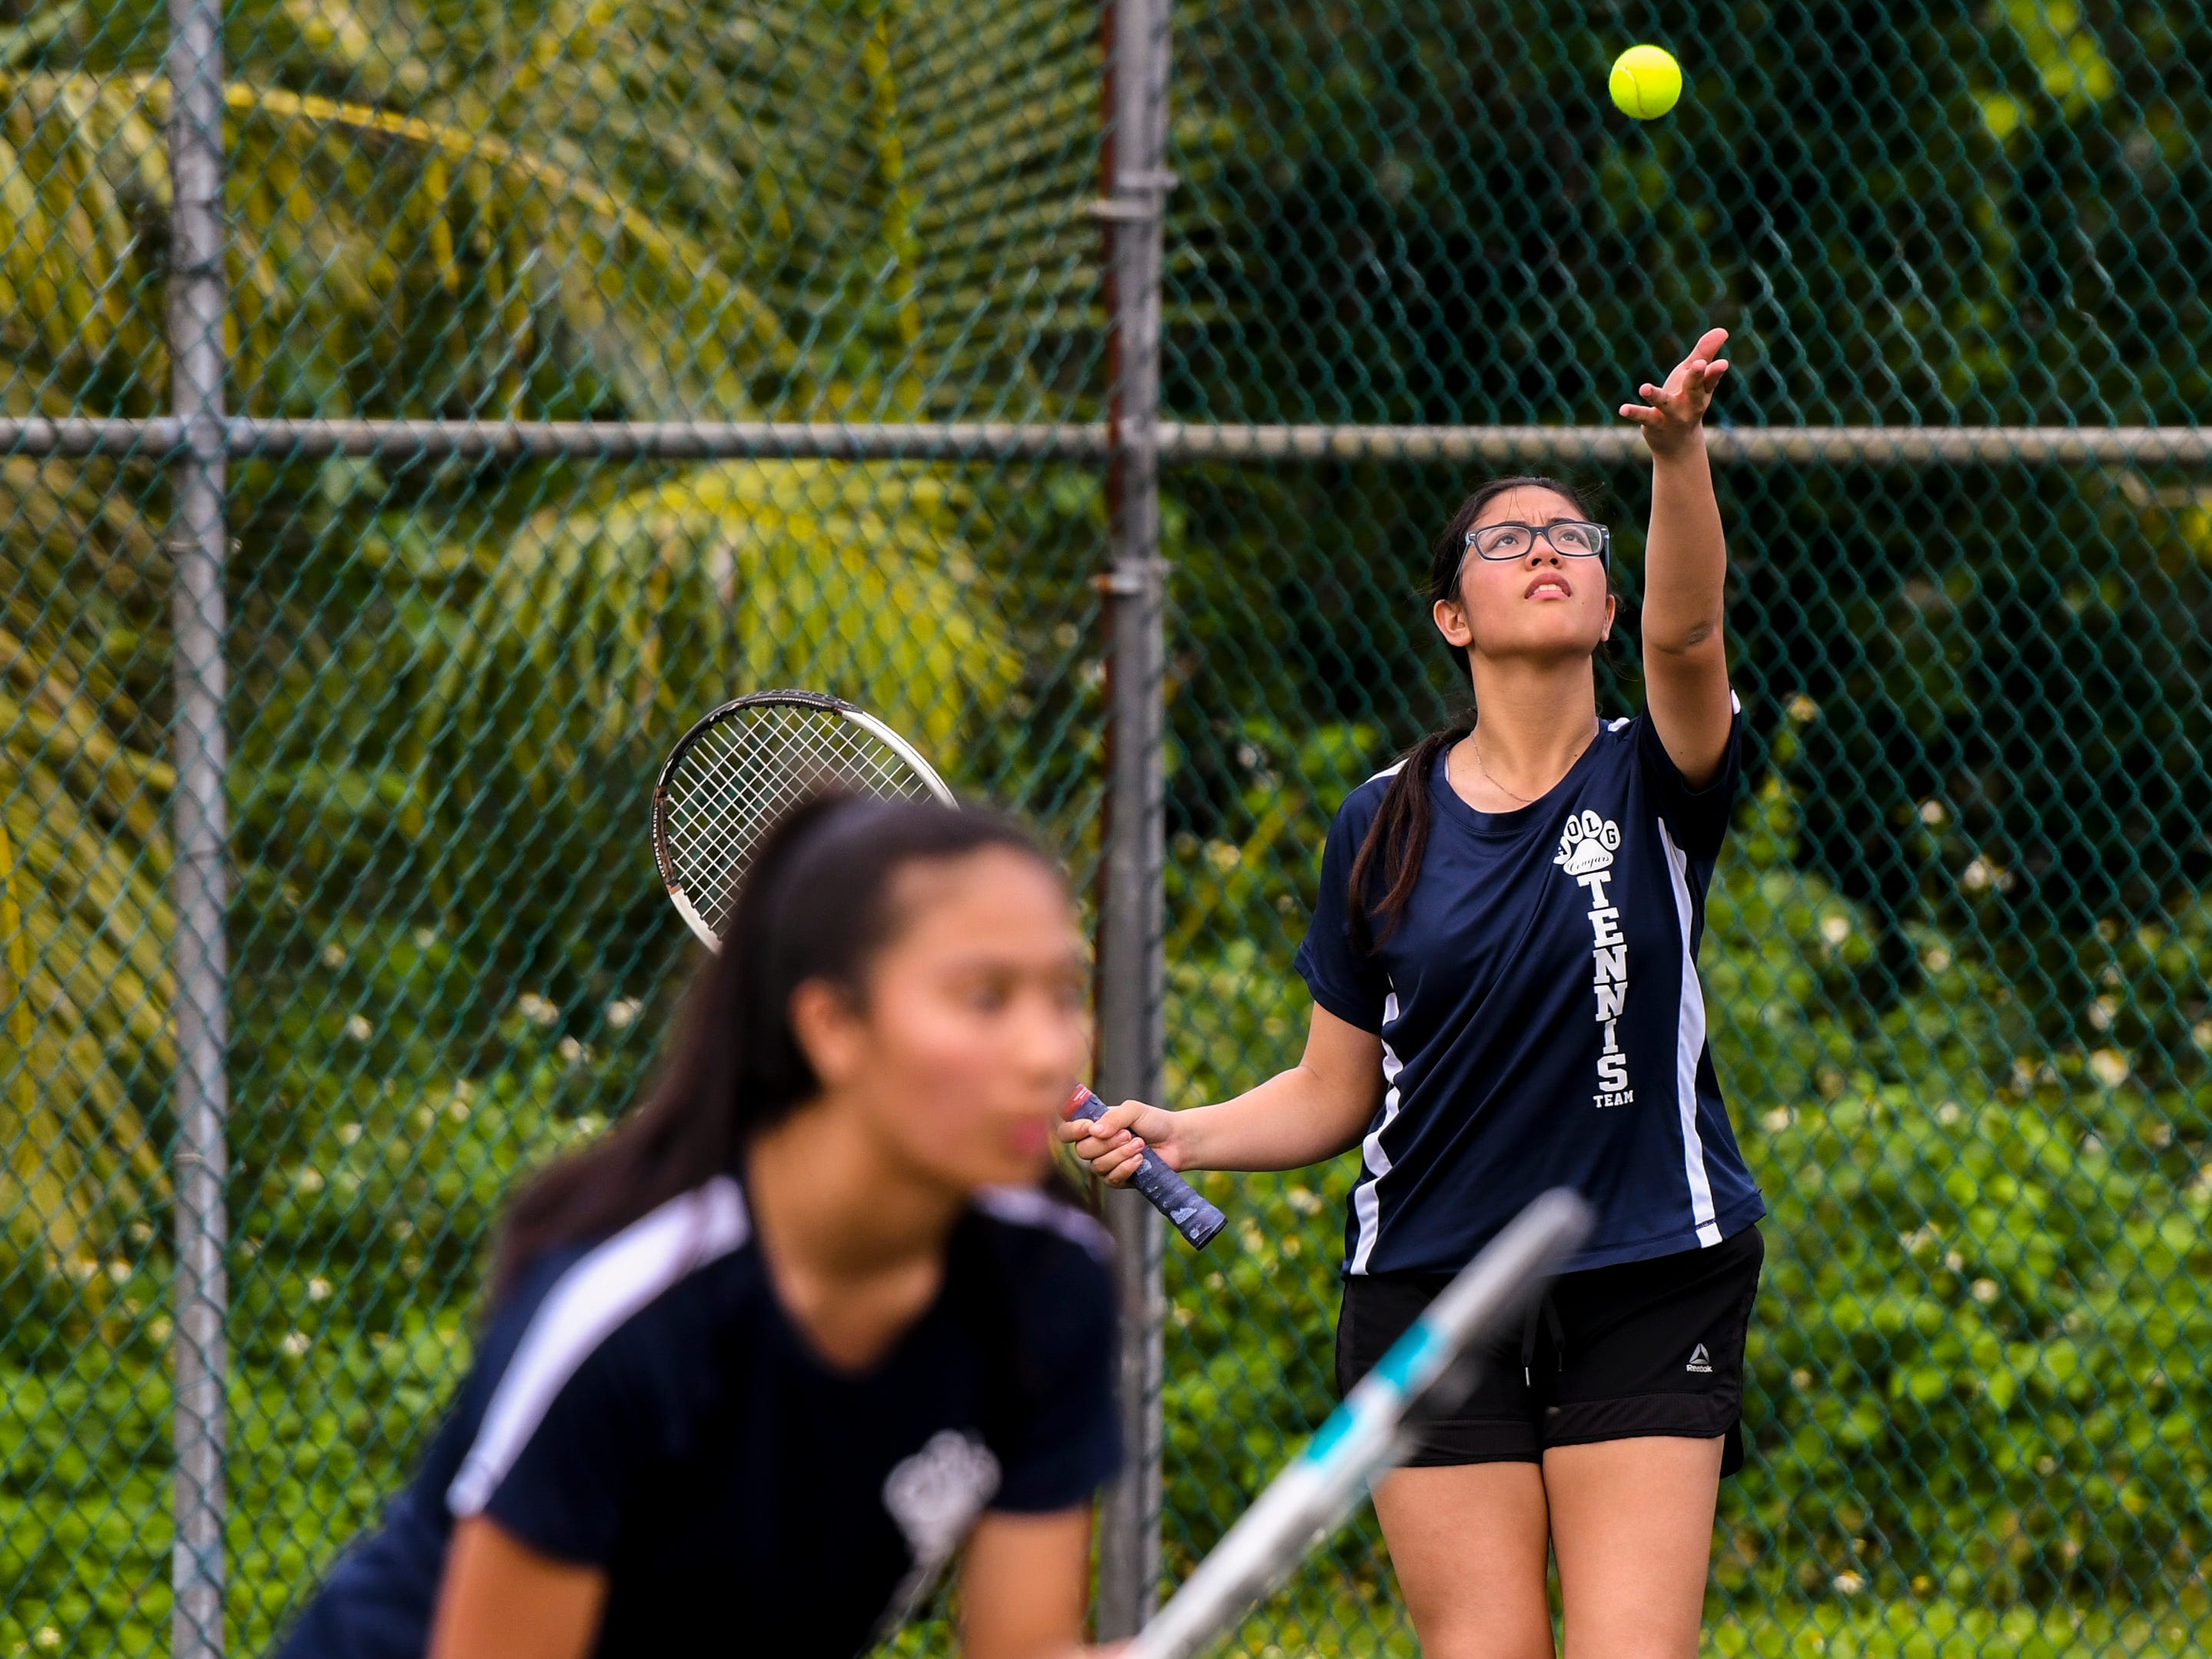 Academy of Our Lady Guam Cougars' Maria Egurrola prepares to serve as she and doubles teammate, Andrea Cruz, take on challengers from the St. John's Knights during an Interscholastic Athletic Association of Guam tennis match at the Rick Ninete Tennis Center in Hagåtna on Thursday, Jan. 31, 2019.